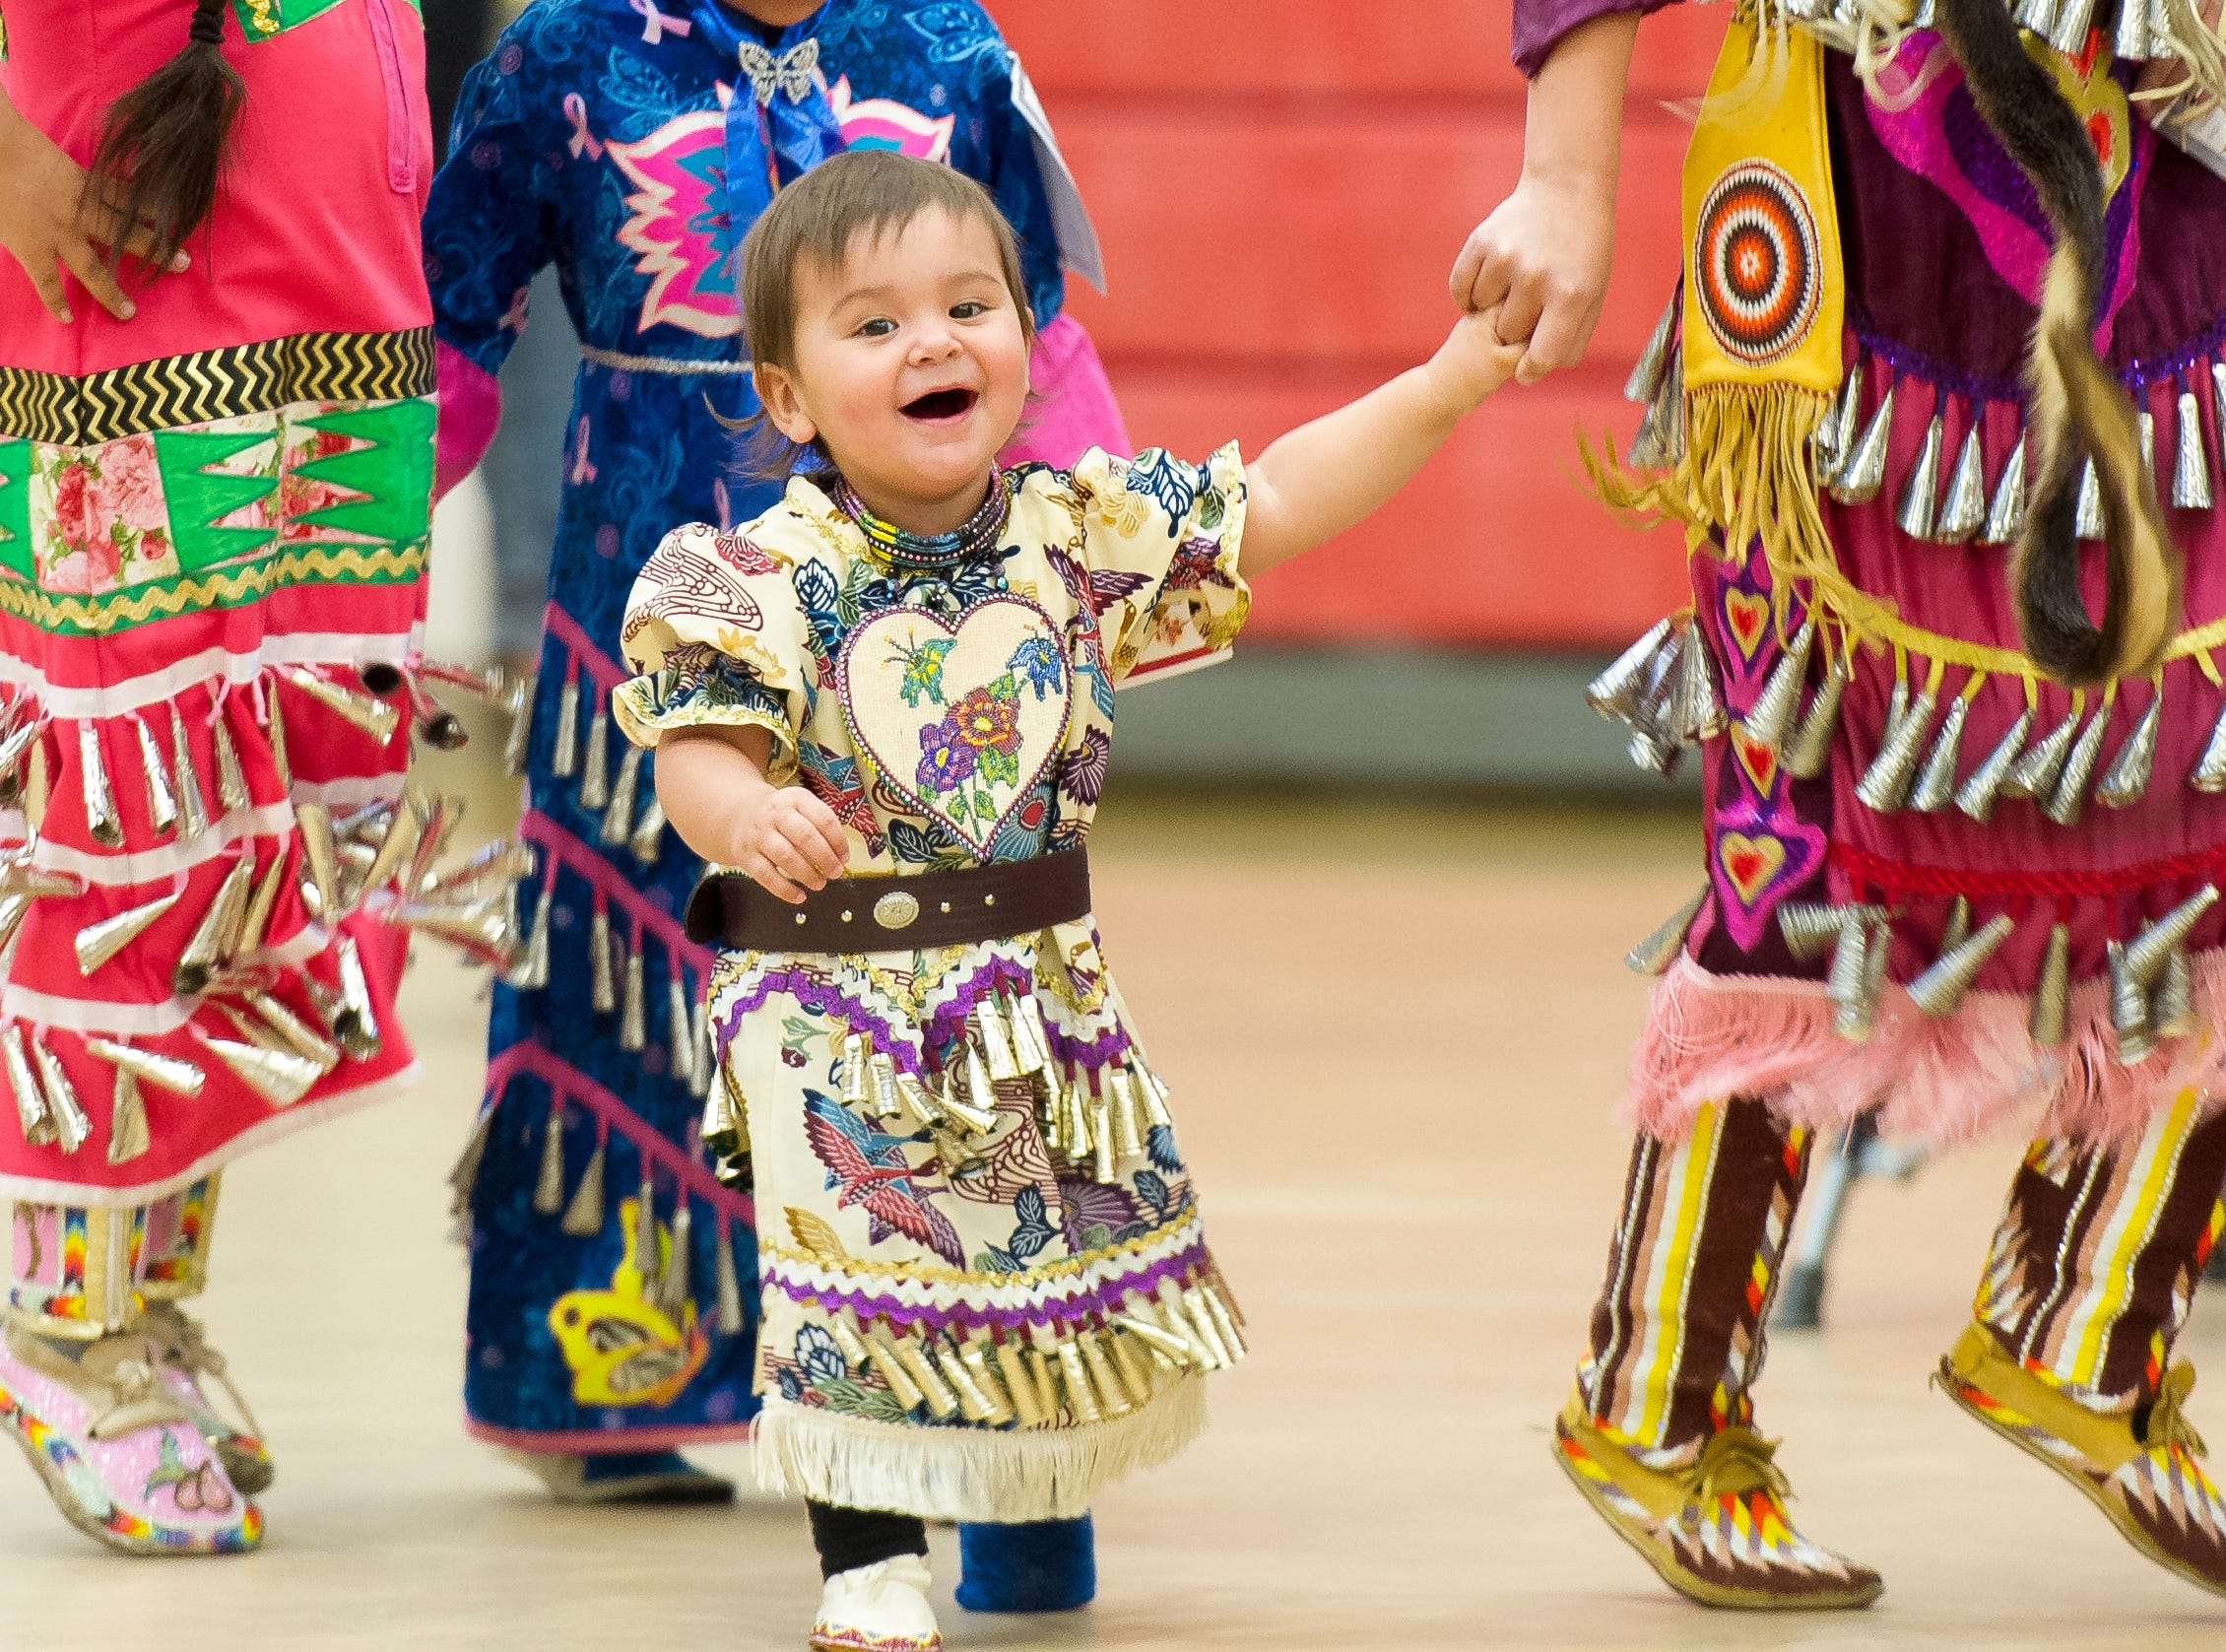 Gracie Leslie, 18 months, laughs while dancing with her family at the Native American powwow at the Paiute Tribal Clinic Friday, March 30, 2018.